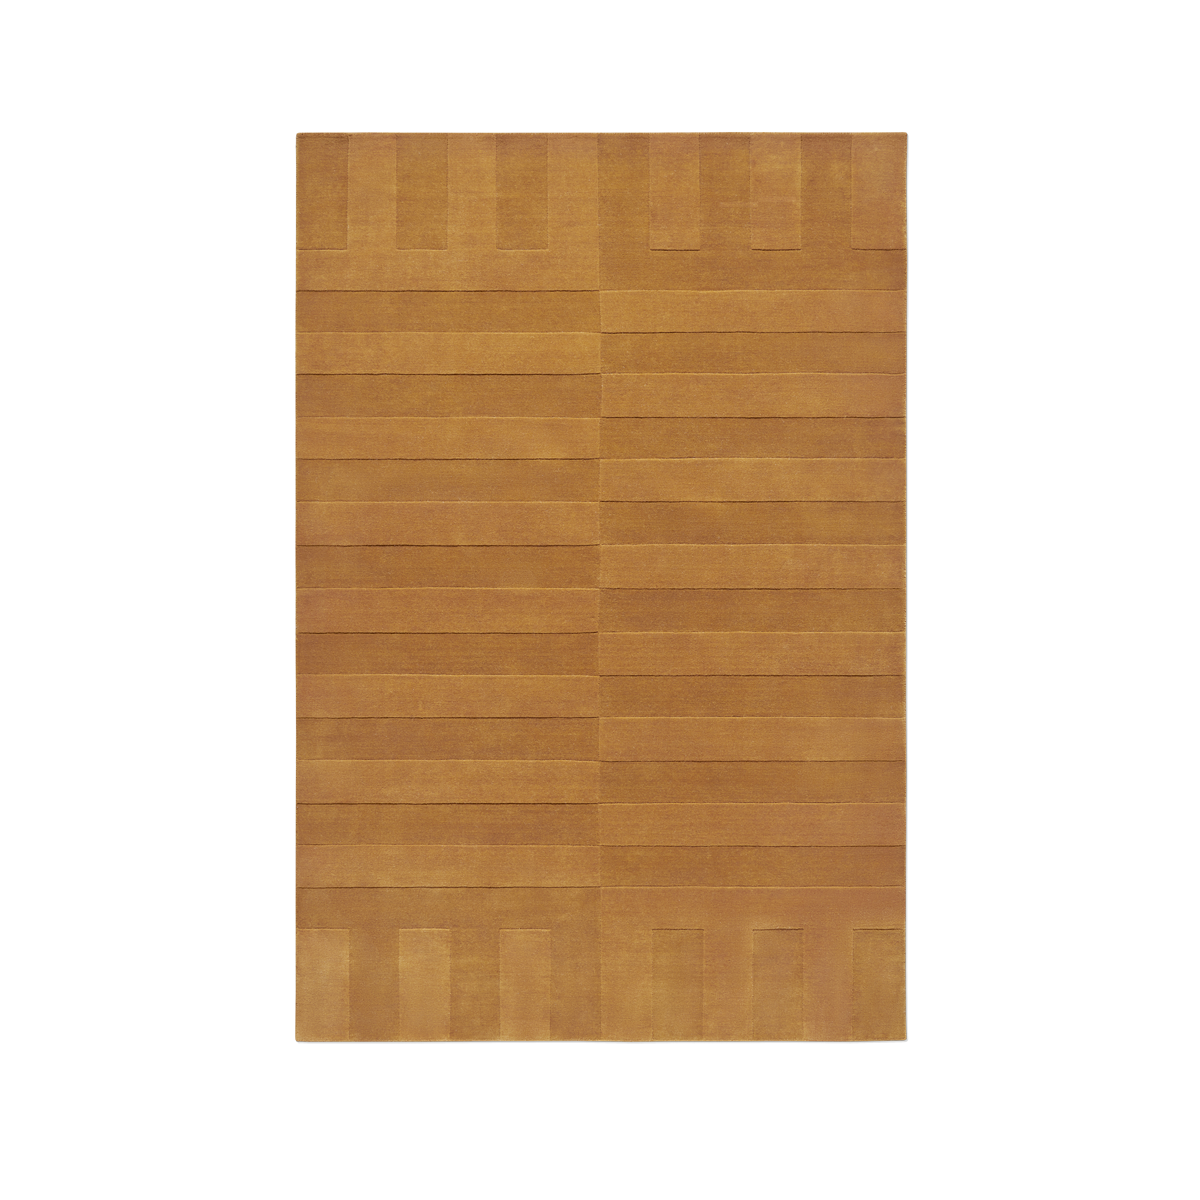 Product image of the plush rug Lux 2 in the color Leo . The pile of the rug is cut in different heights creating a blocky pattern across the rug.